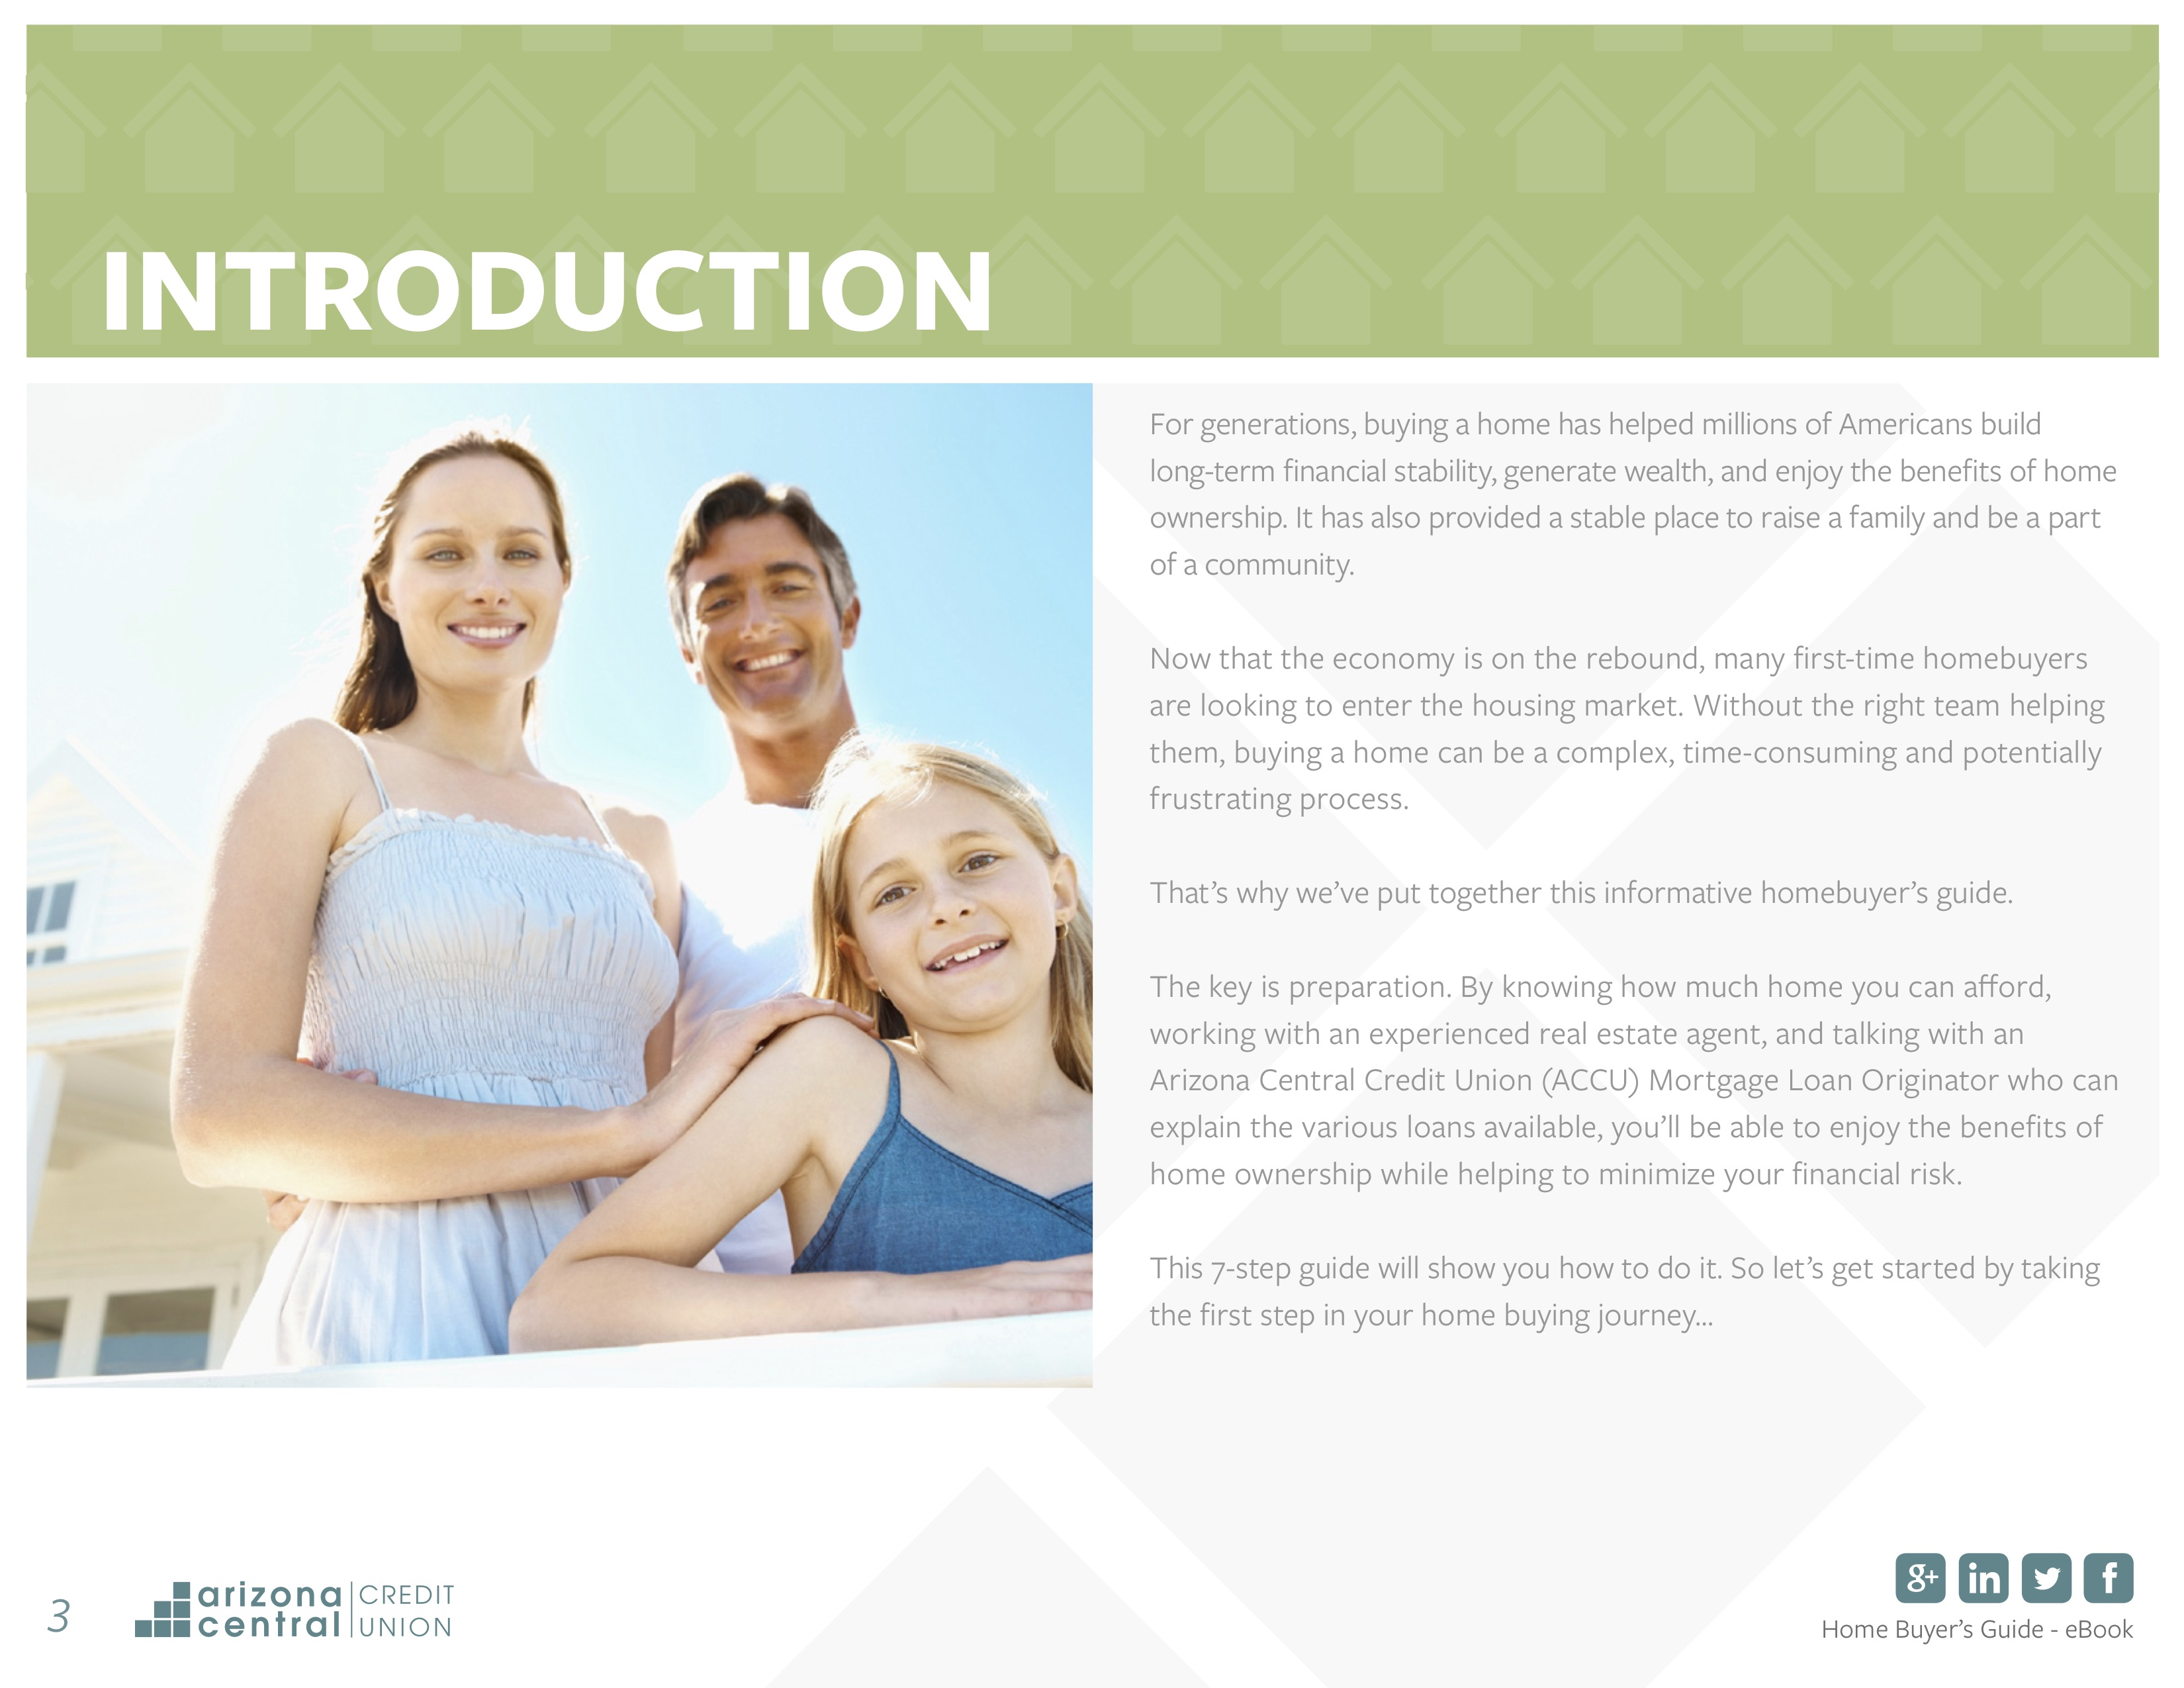 26939_ACCU_Home_Buyers_eBook_Page3